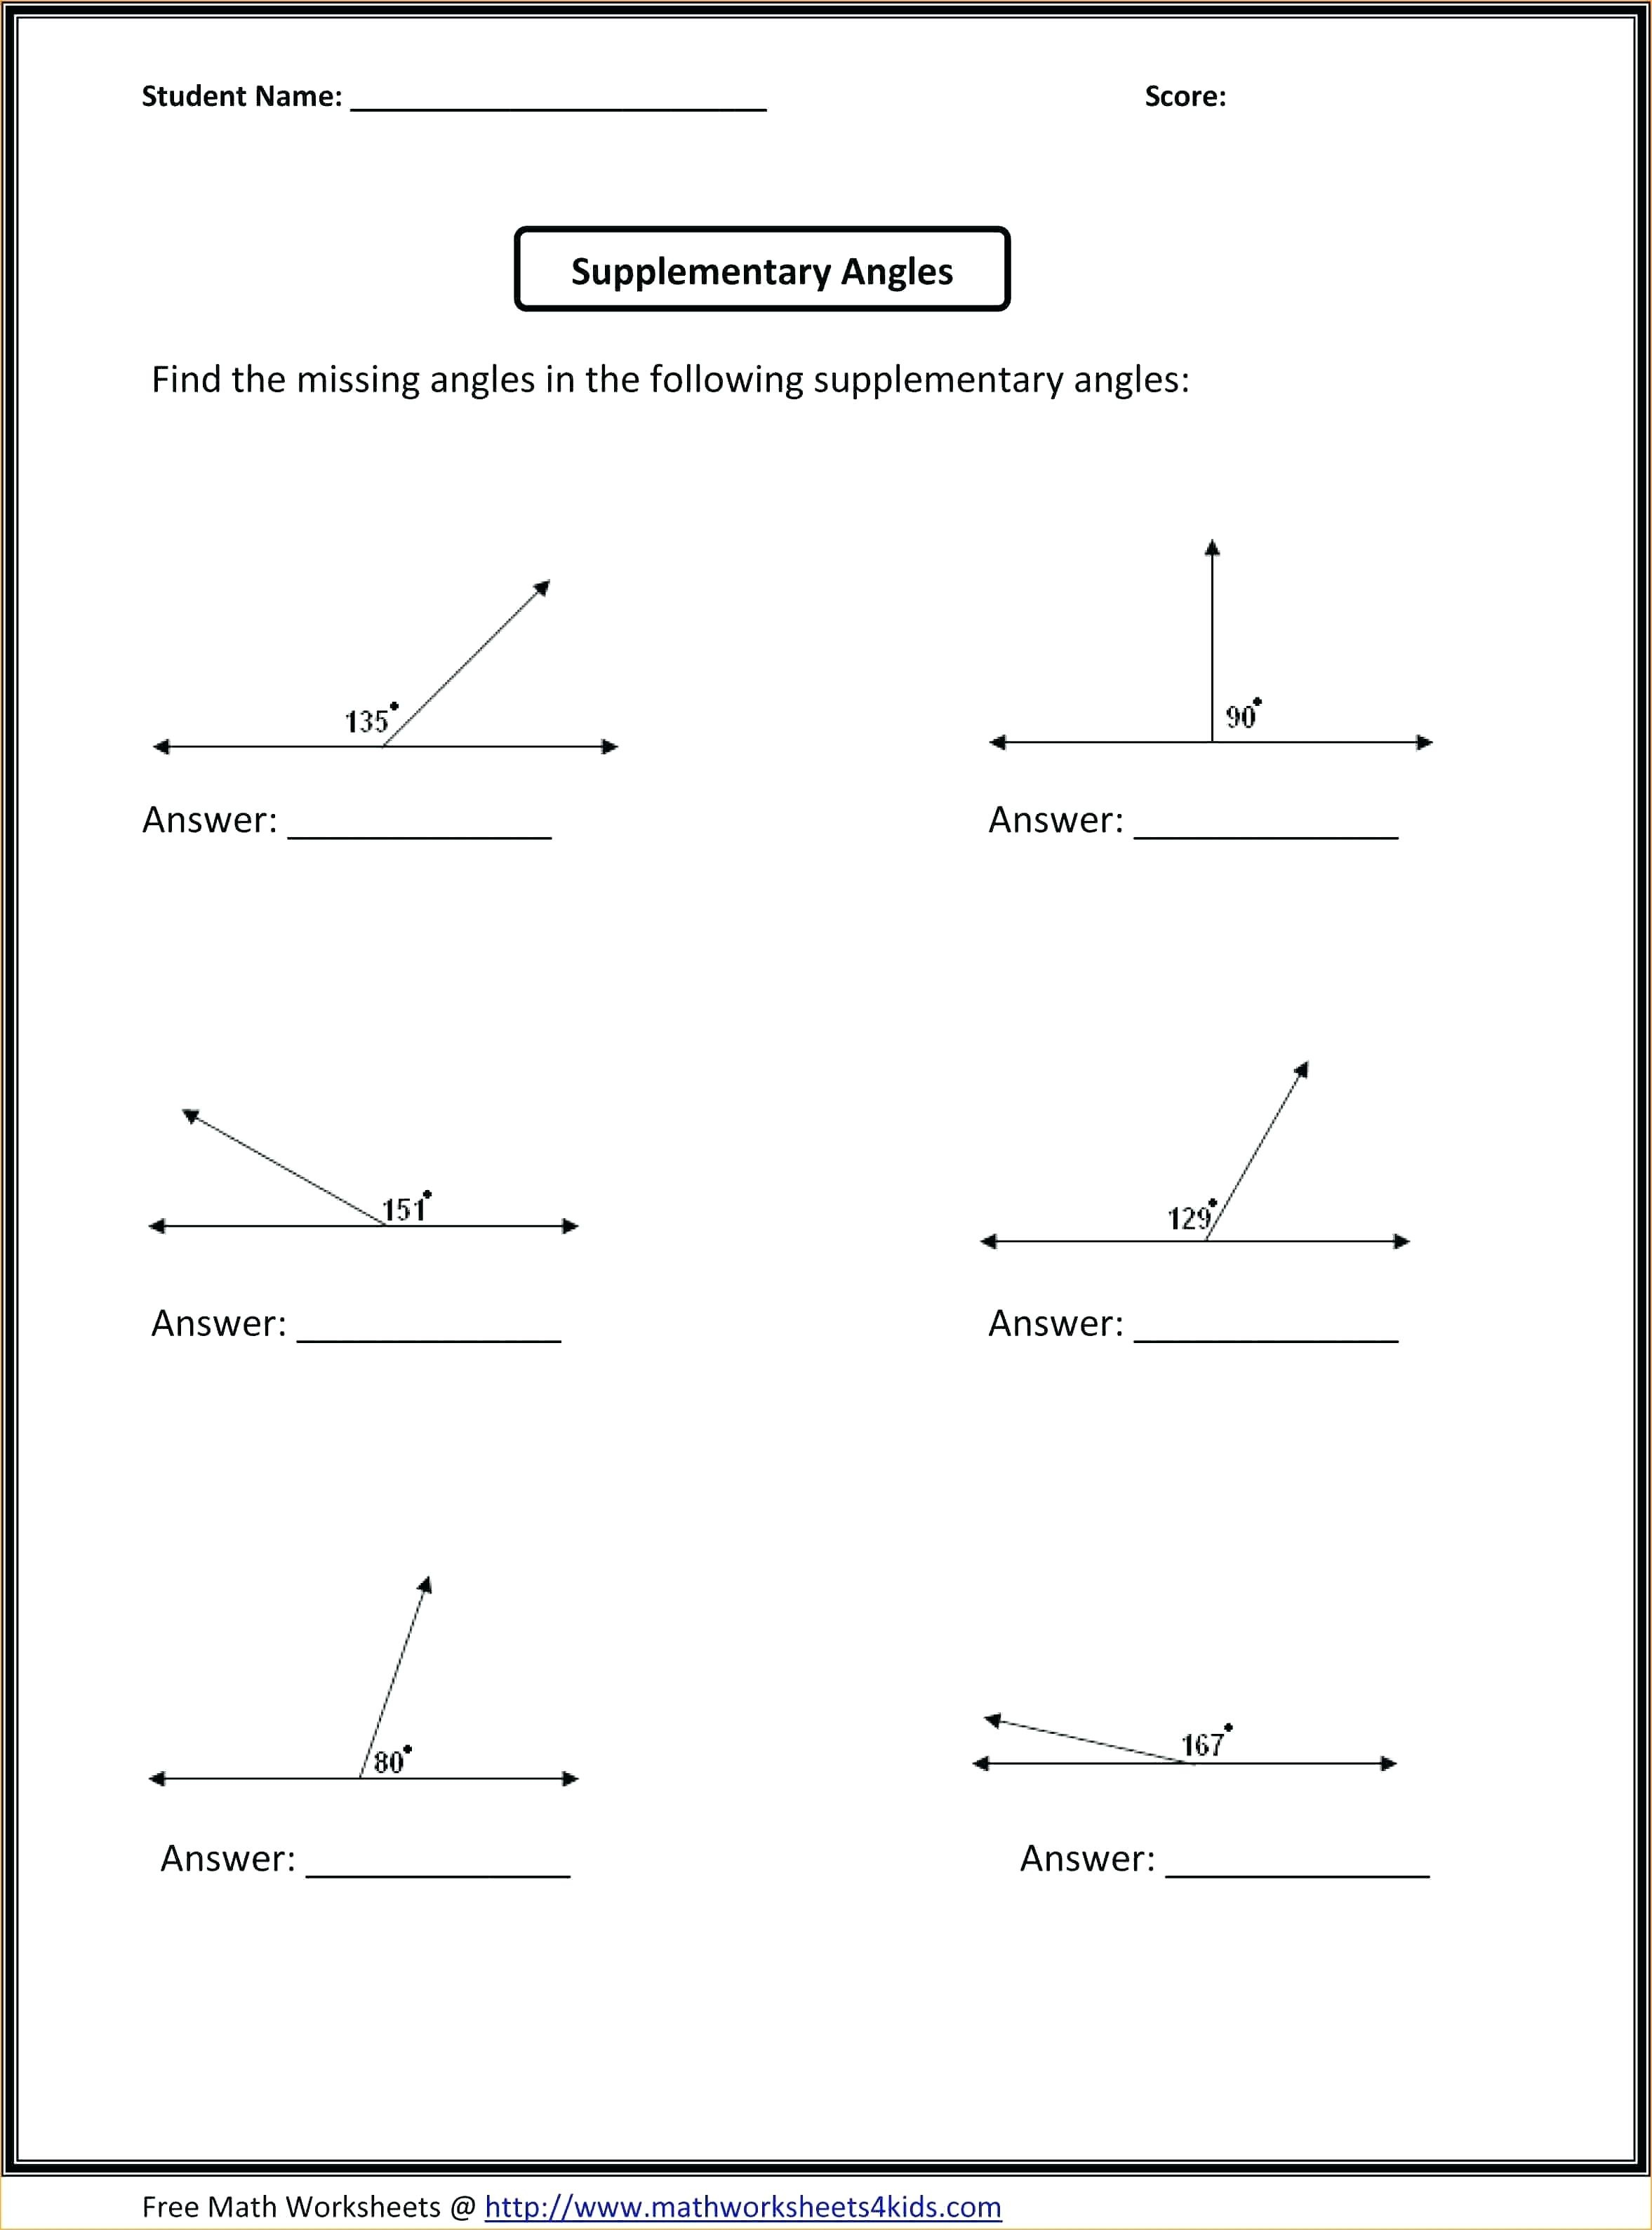 Free Printable Geometry Worksheets For Middle School